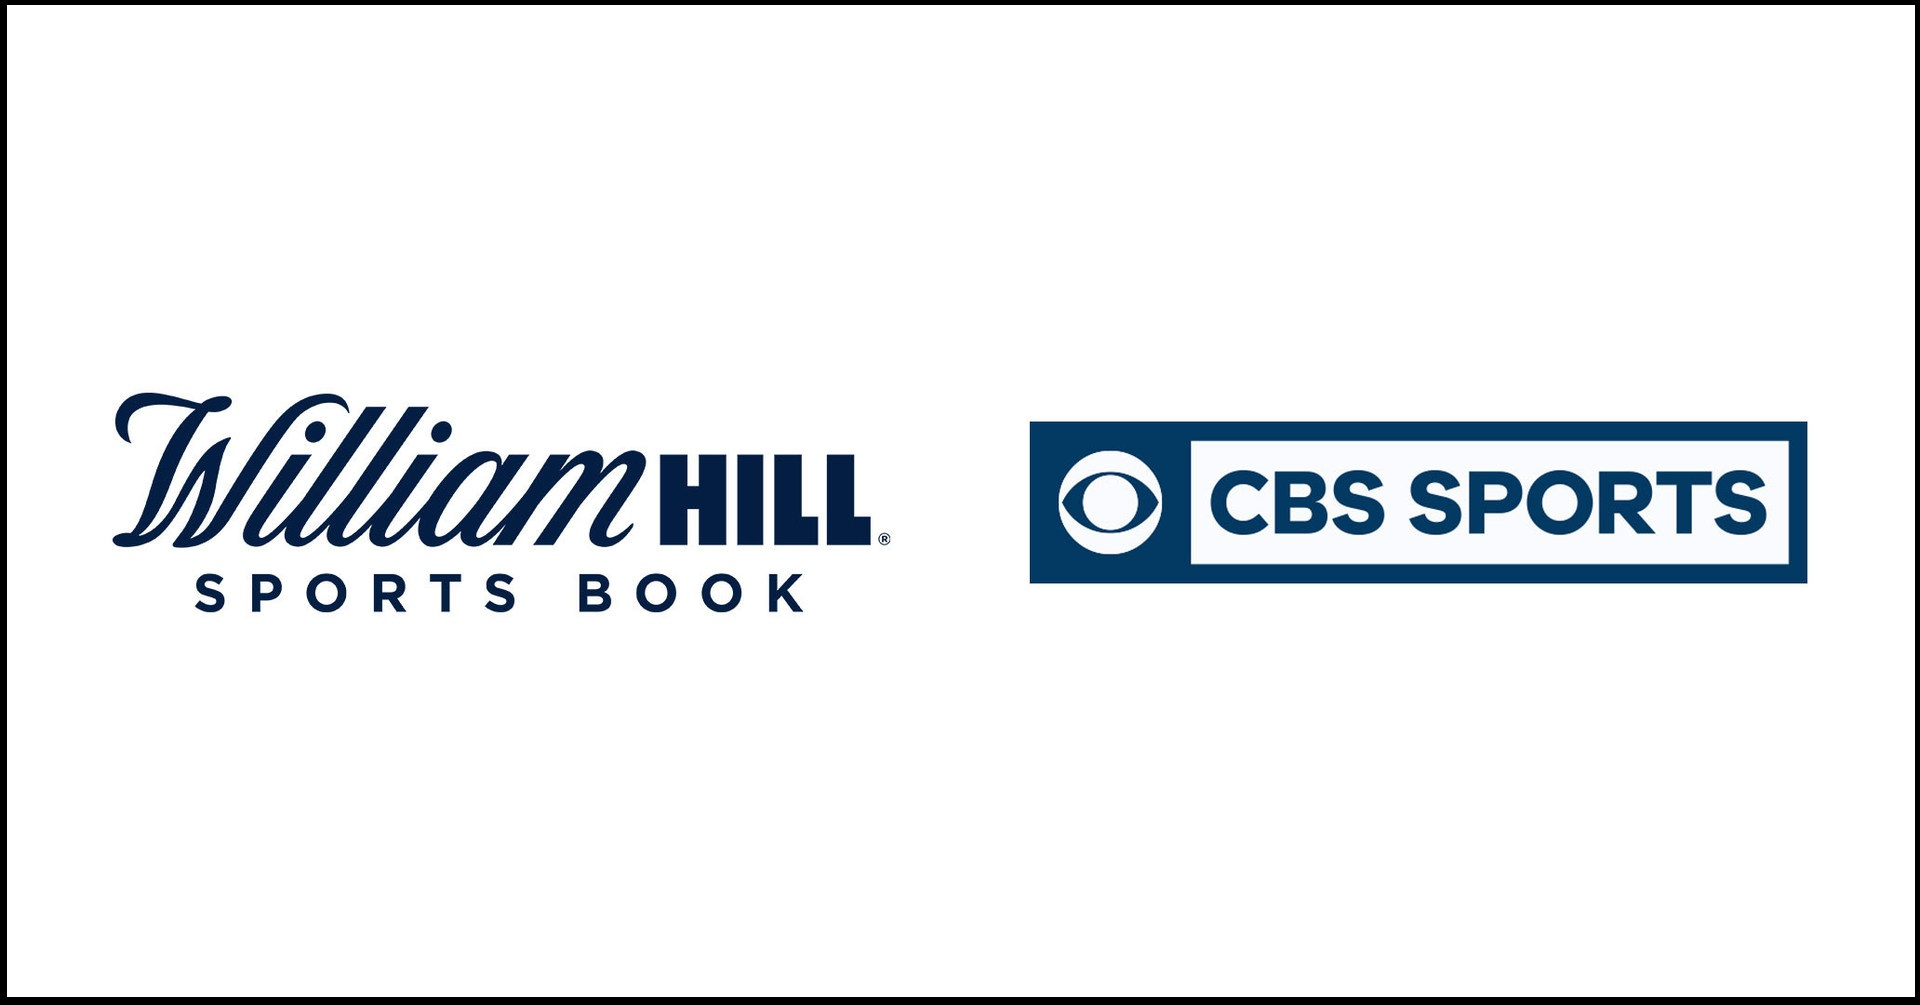 William Hill Strikes Partnership Deal With CBS Sports